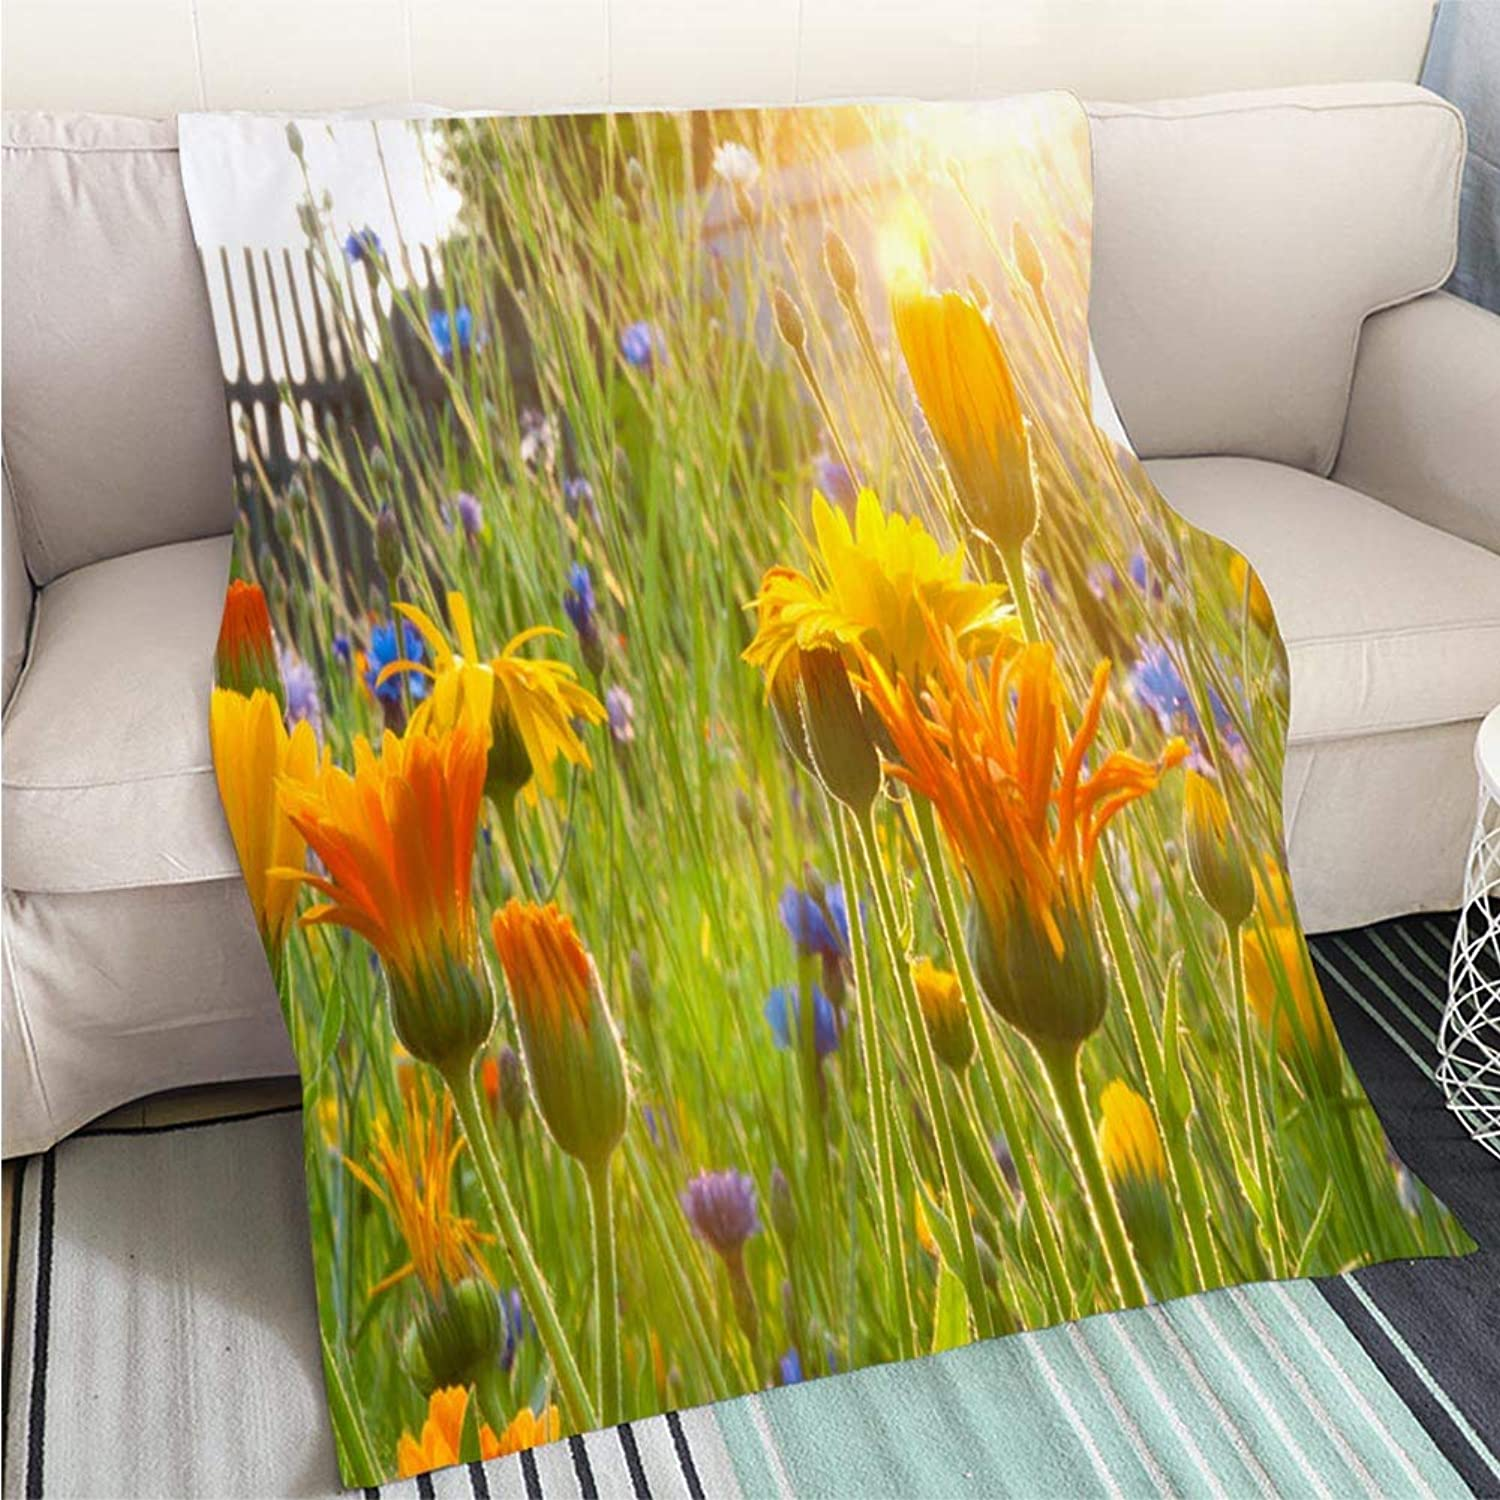 Comforter Multicolor Bed or Couch Garden Flowers at Sunrise Hypoallergenic Blanket for Bed Couch Chair